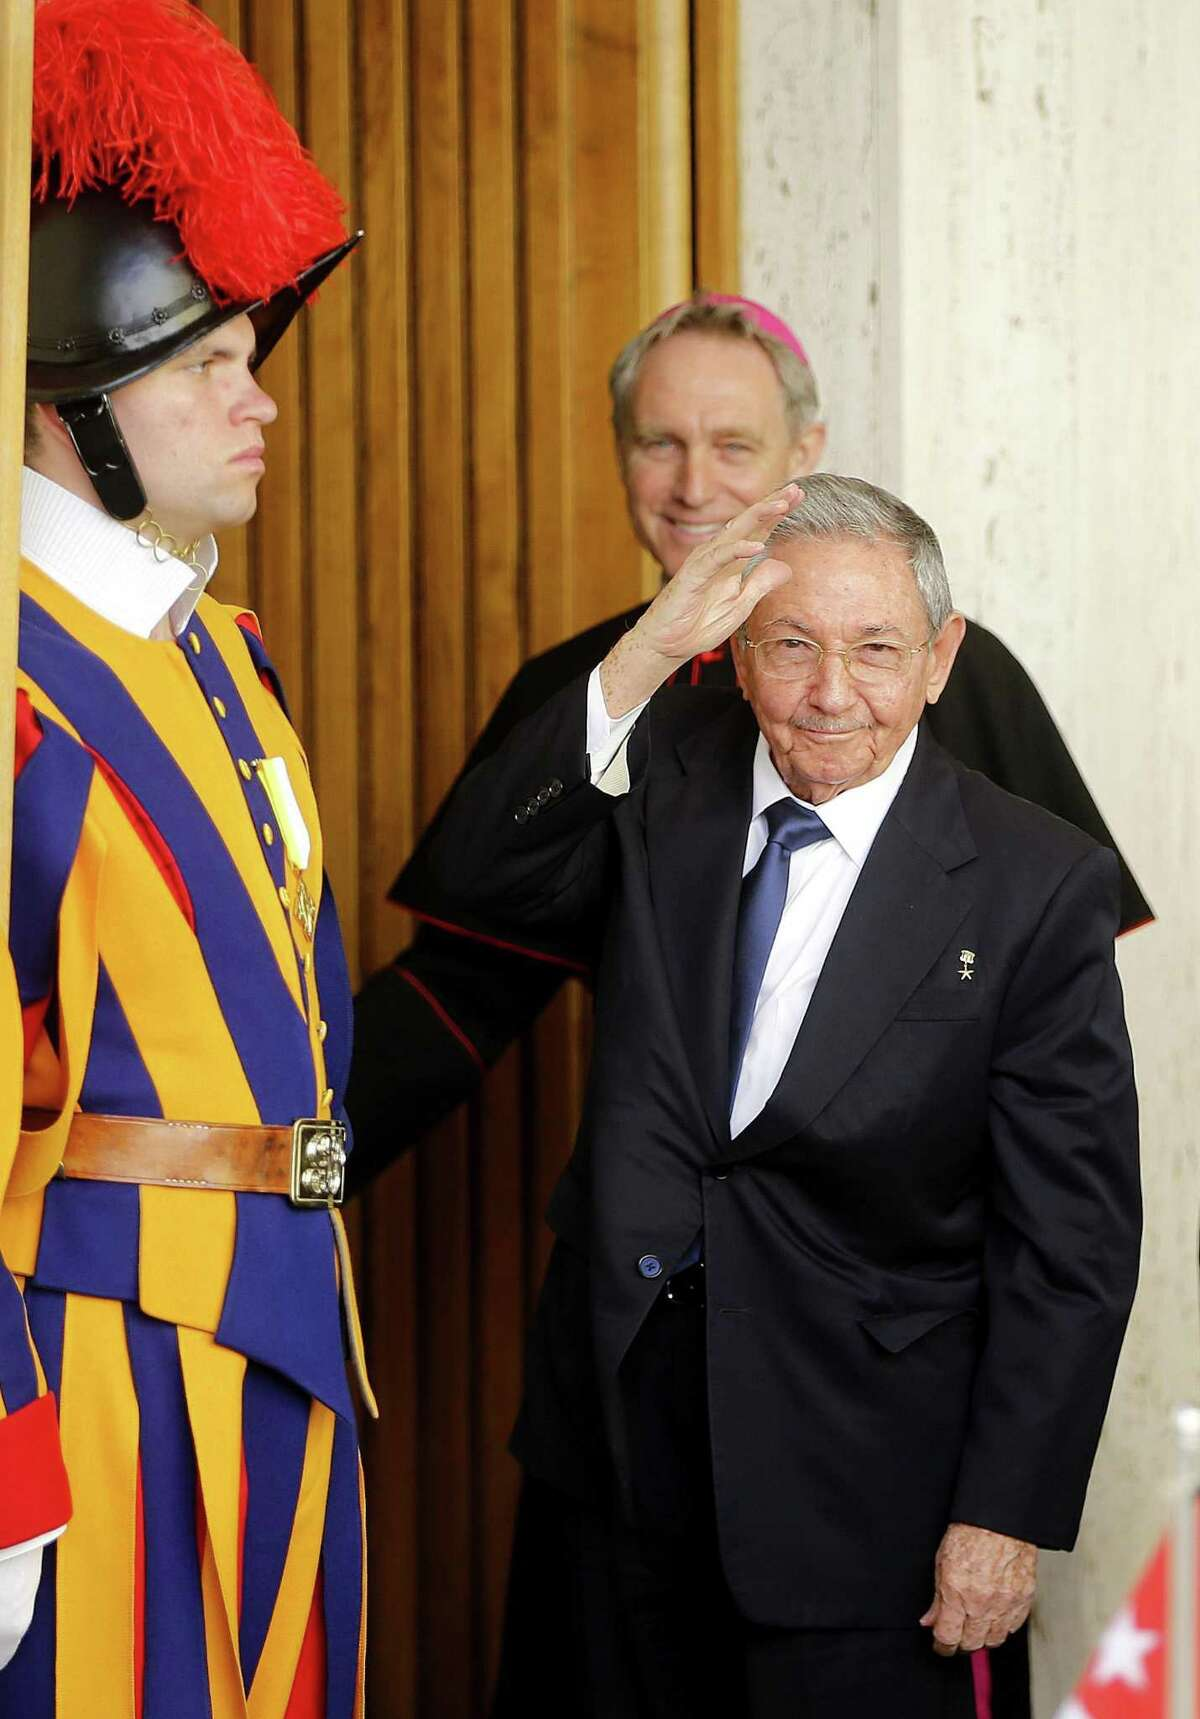 """Cuban President Raul Castro waves as a Swiss Guard, left, and Archbishop George Gaenswein stand by him, prior to meeting Pope Francis, at the Vatican, Sunday, May 10, 2015. Cuban President Raul Castro received a warm welcome at the Vatican Sunday from Pope Francis, who played a key role in the breakthrough between Washington and Havana aimed at restoring U.S.-Cuban diplomatic ties, and later lavished praise on the pontiff for his """"wisdom."""" (Fabio Frustaci/ANSA via AP)"""